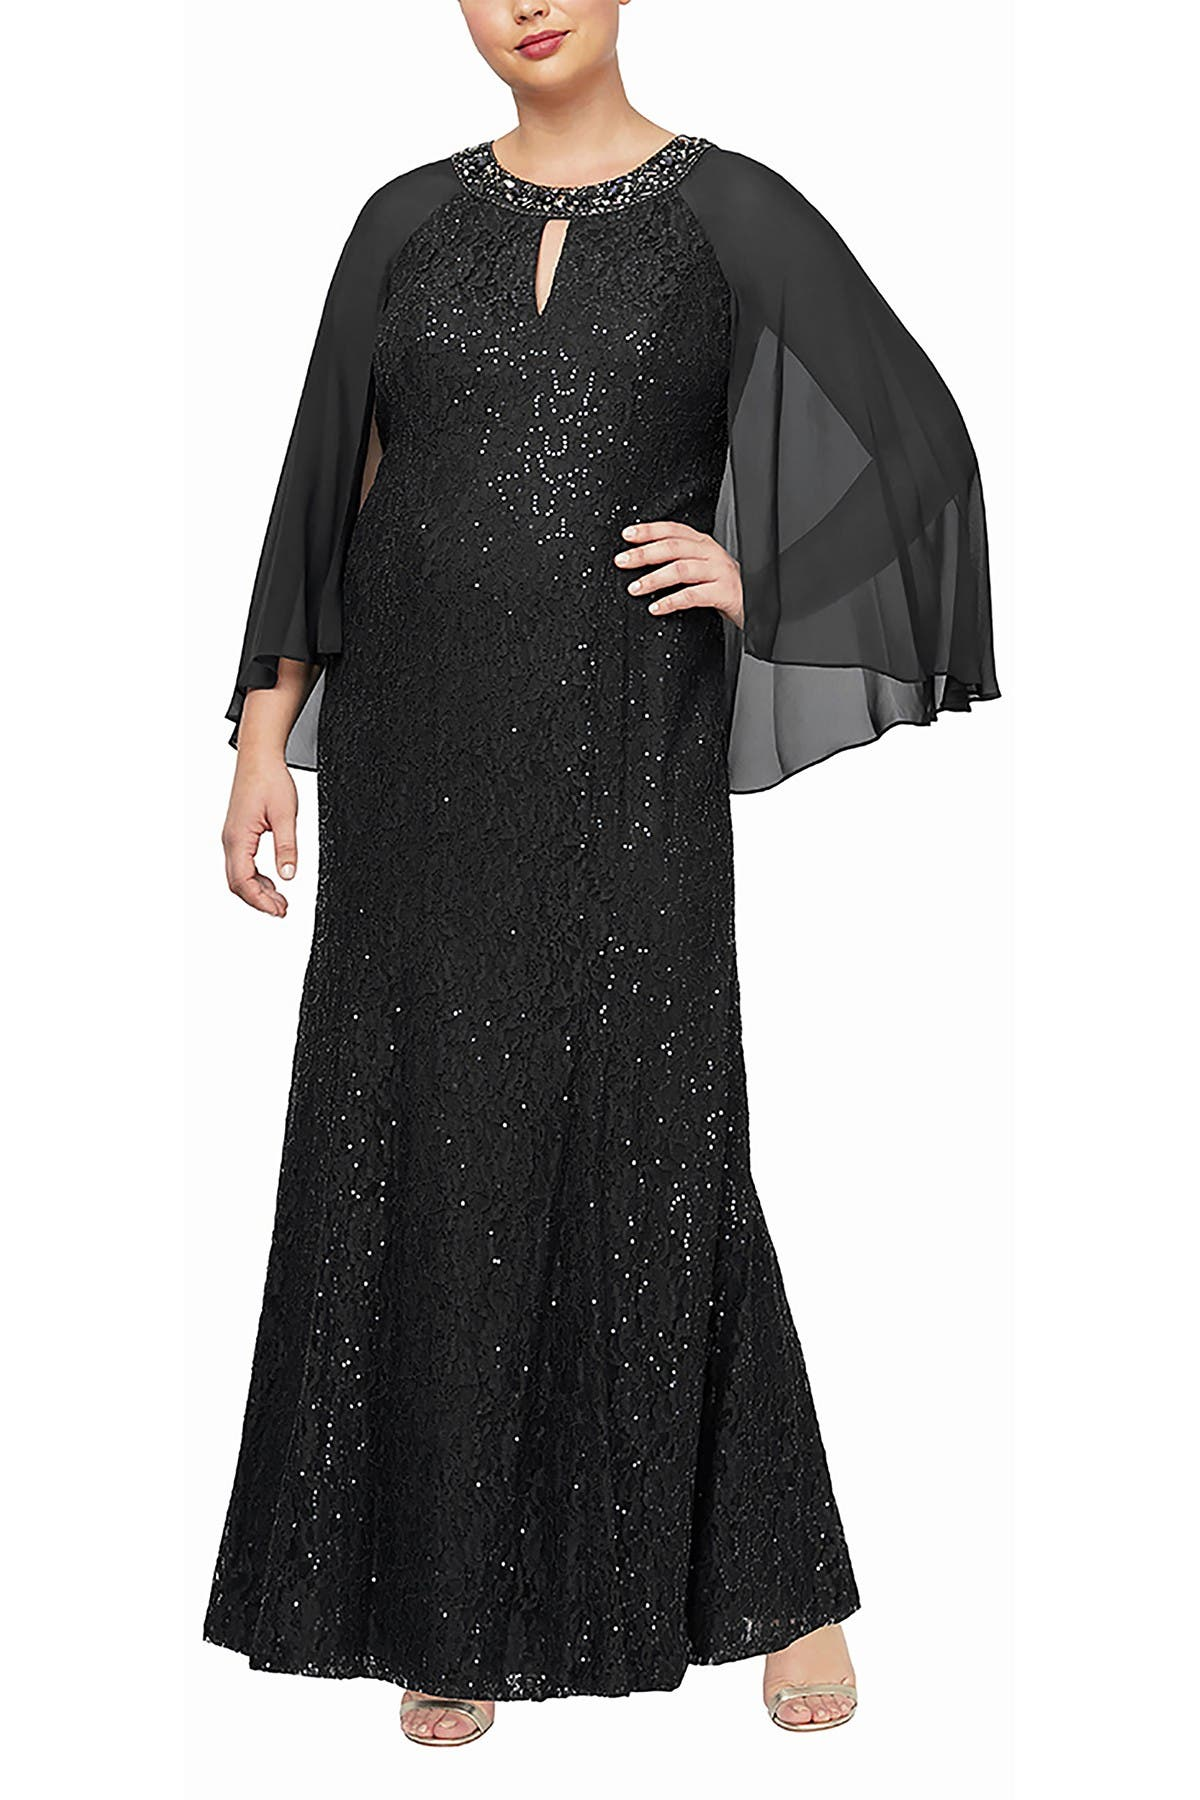 Image of SLNY Sequined Cape Overlay Dress